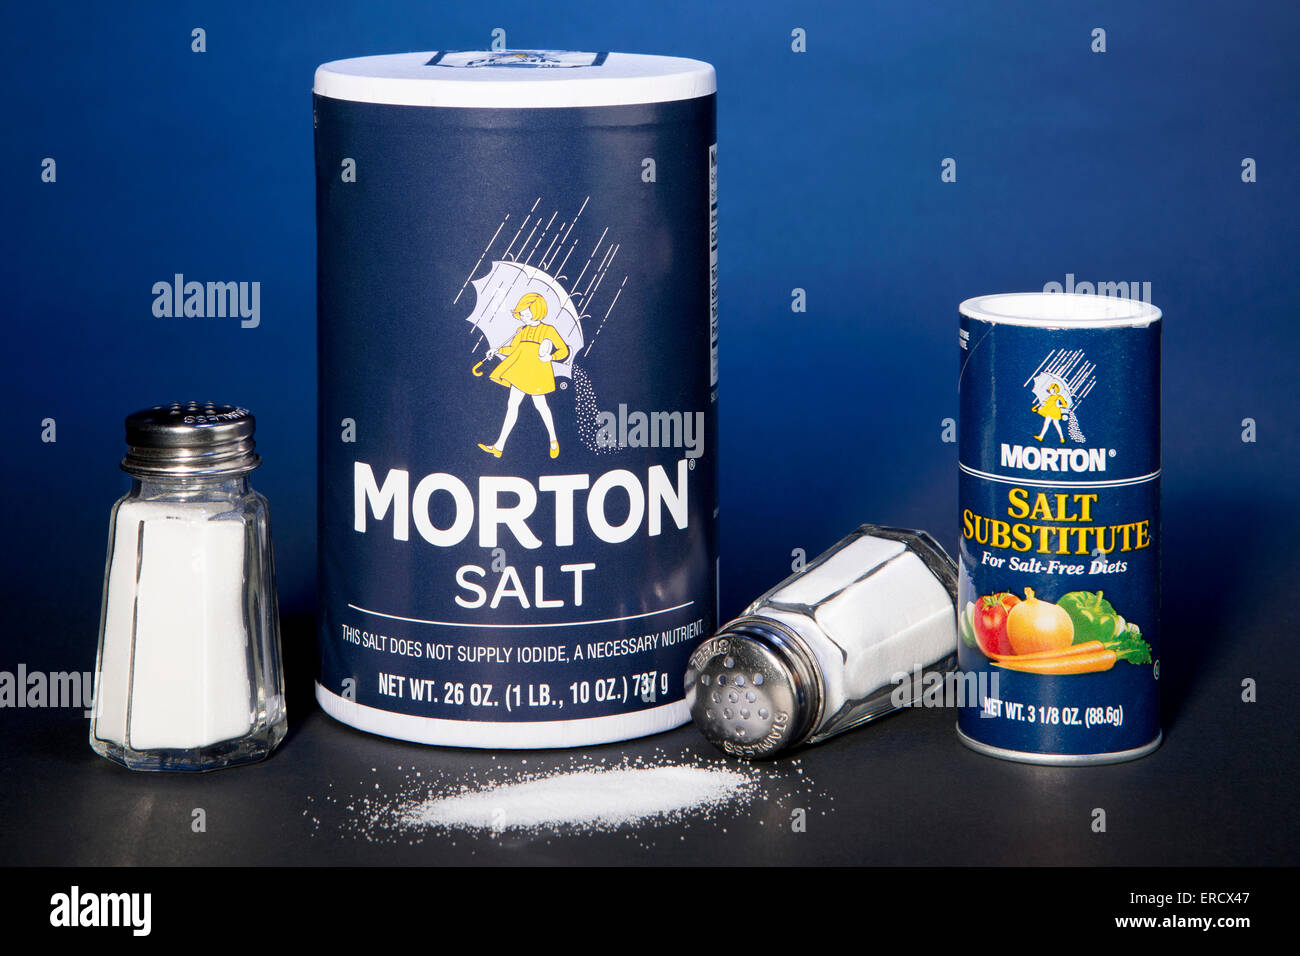 Morton Salt container next to a container of Morton Salt Substitute (made with Potassium chloride) - Stock Image